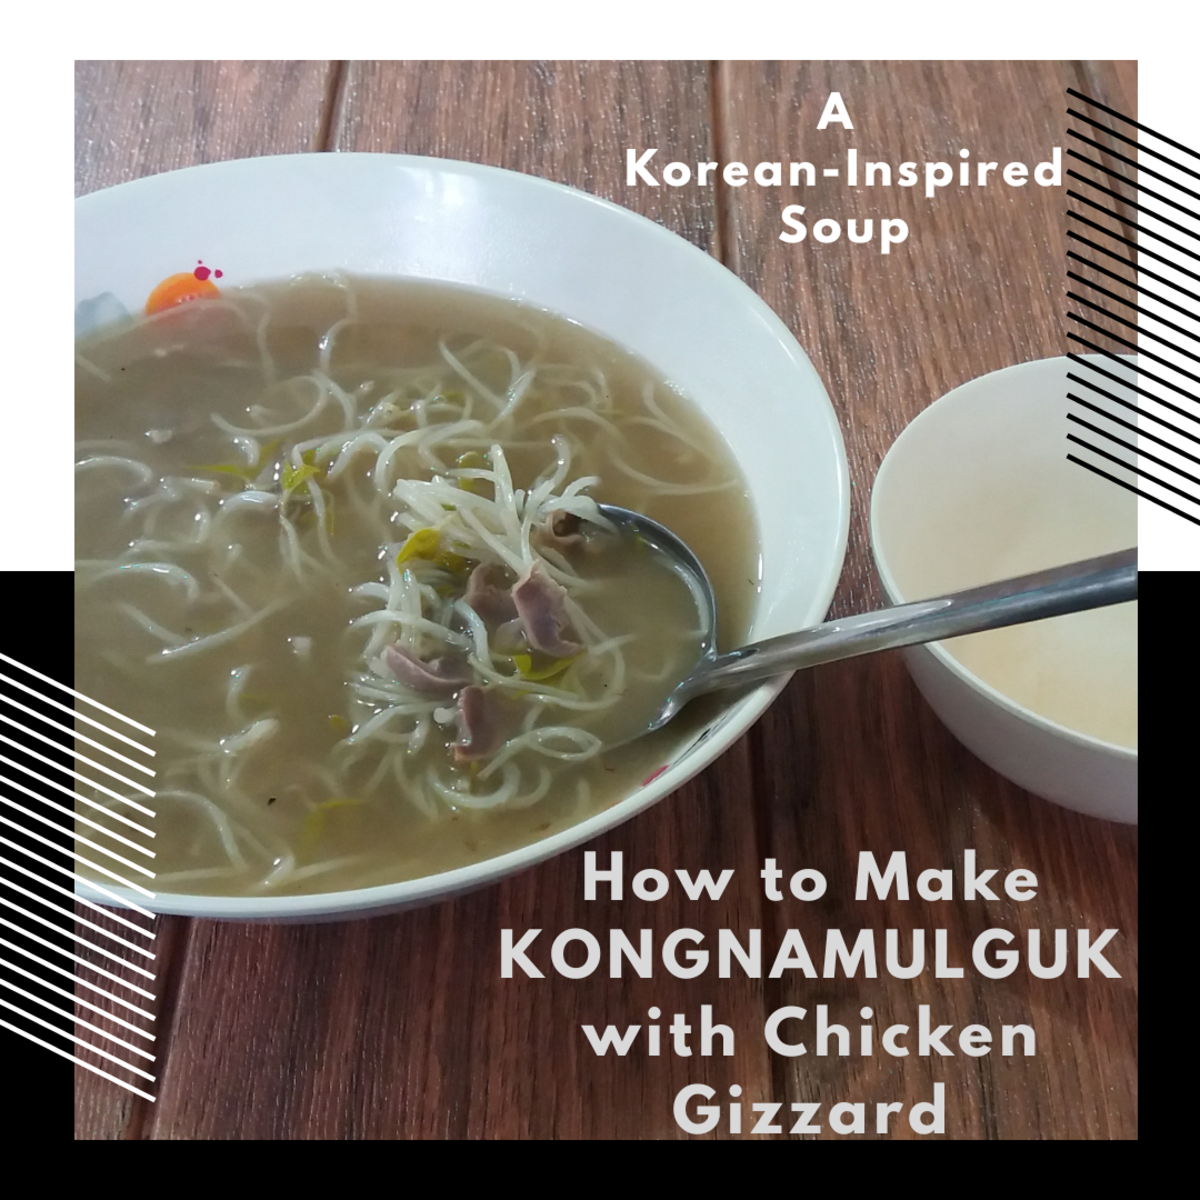 Kongnamulguk With Chicken Gizzards: A Korean-Inspired Soup Recipe